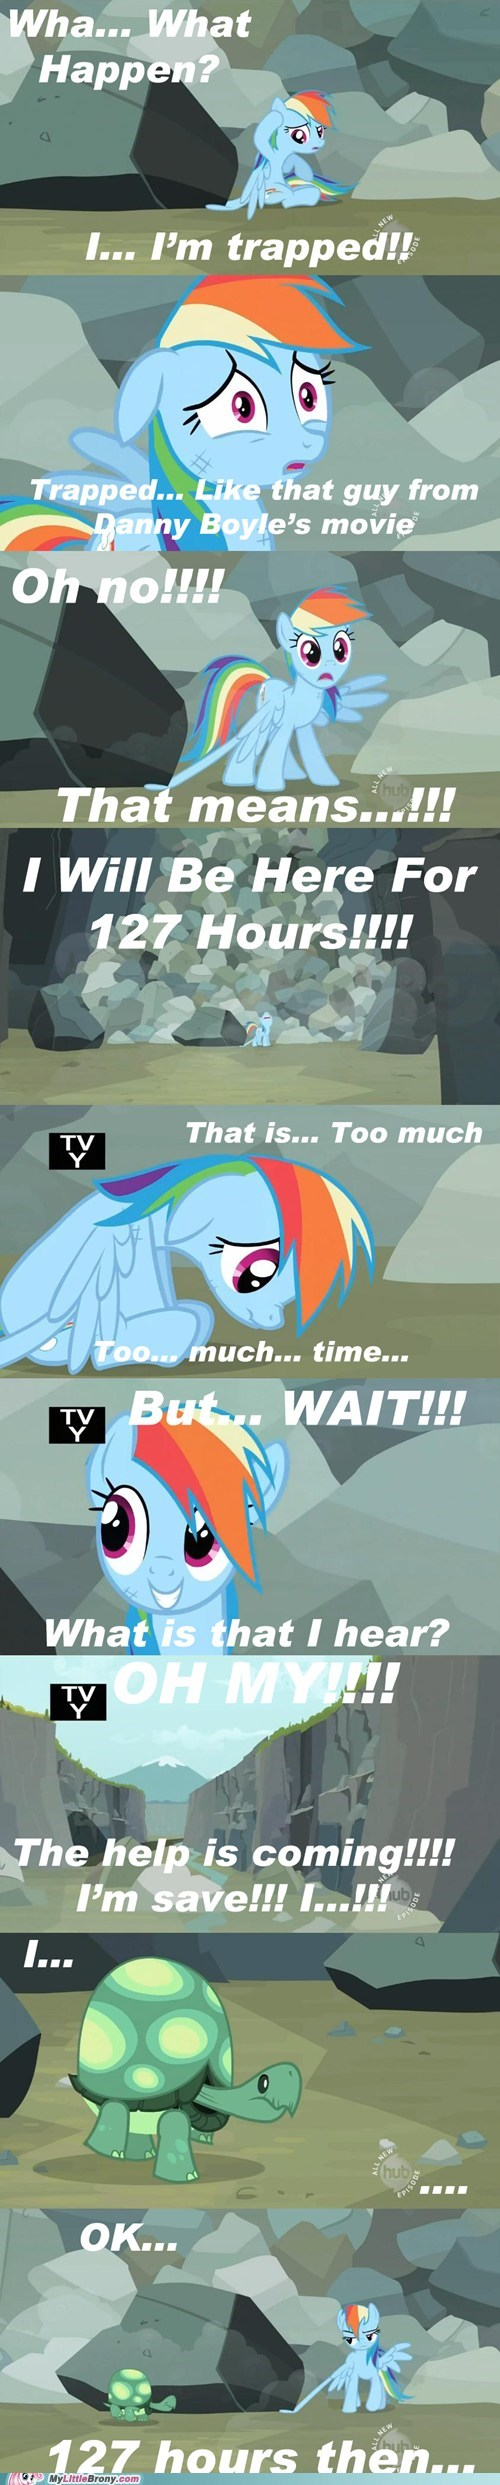 comic comics Movie rainbow dash tank trapped - 5456670976